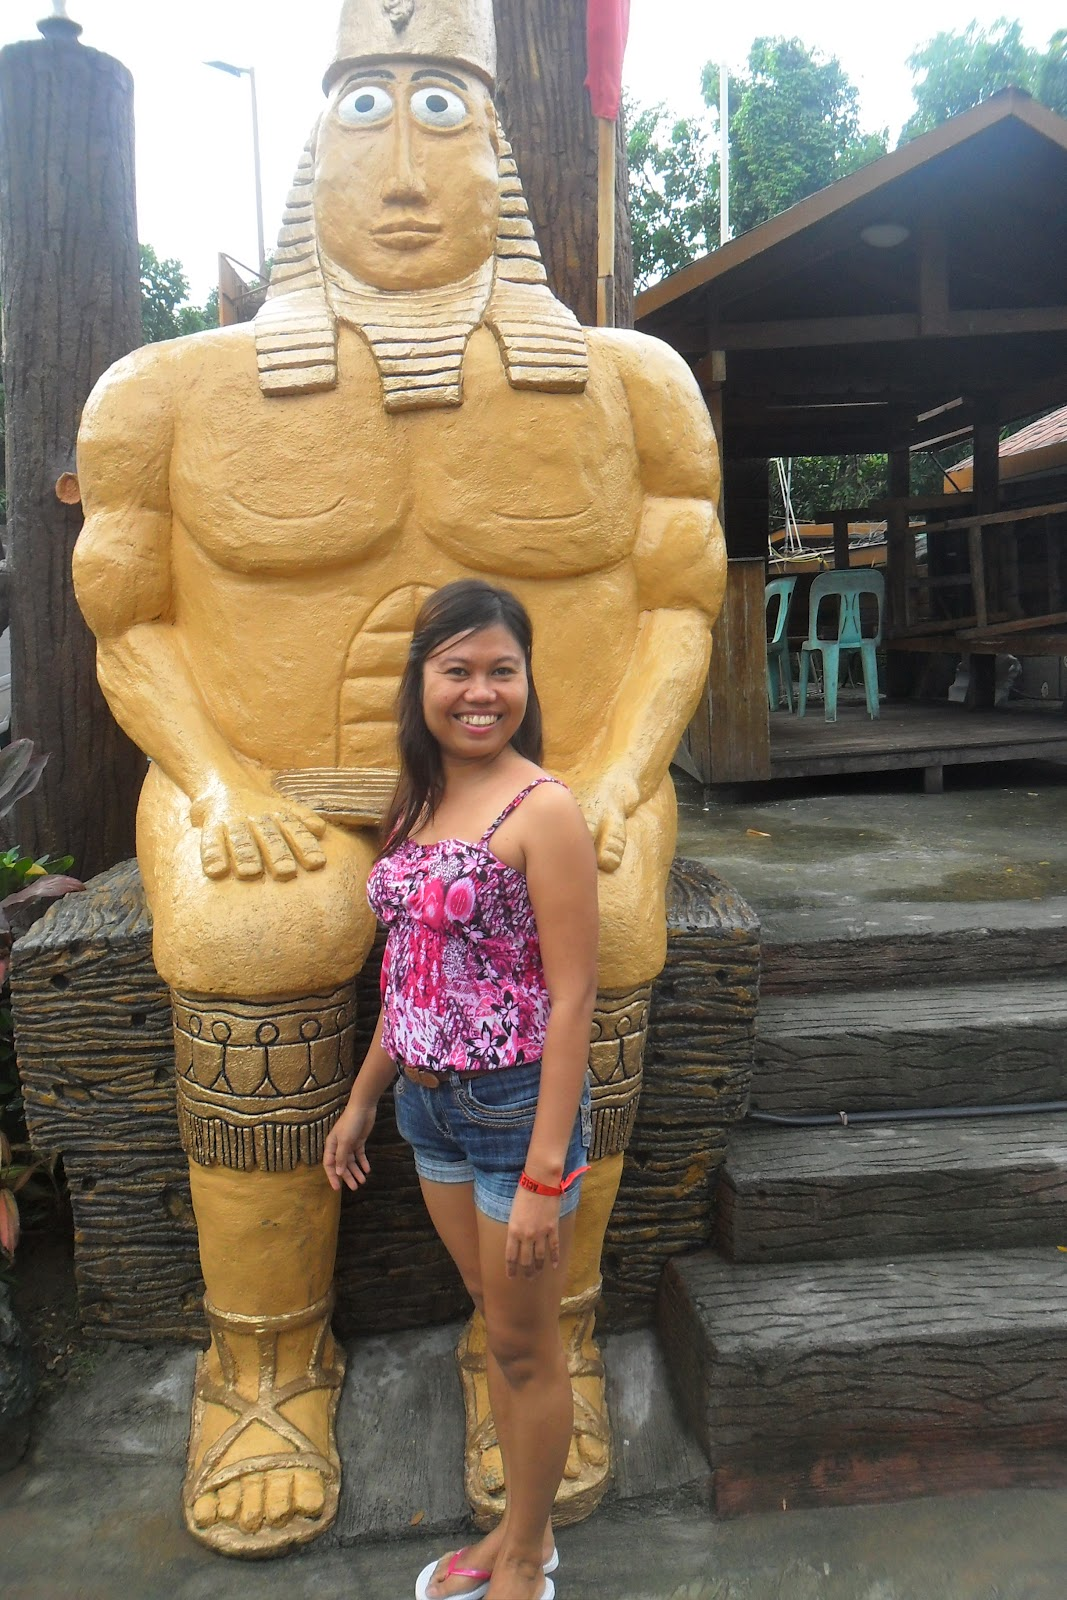 cainta girls A profile of a repeat scammer from mindanao, philippines may 18th, 2010 beware scammers who use pictures like this one we have several criminals who repeatedly create profiles on our site to solicit money from our members.